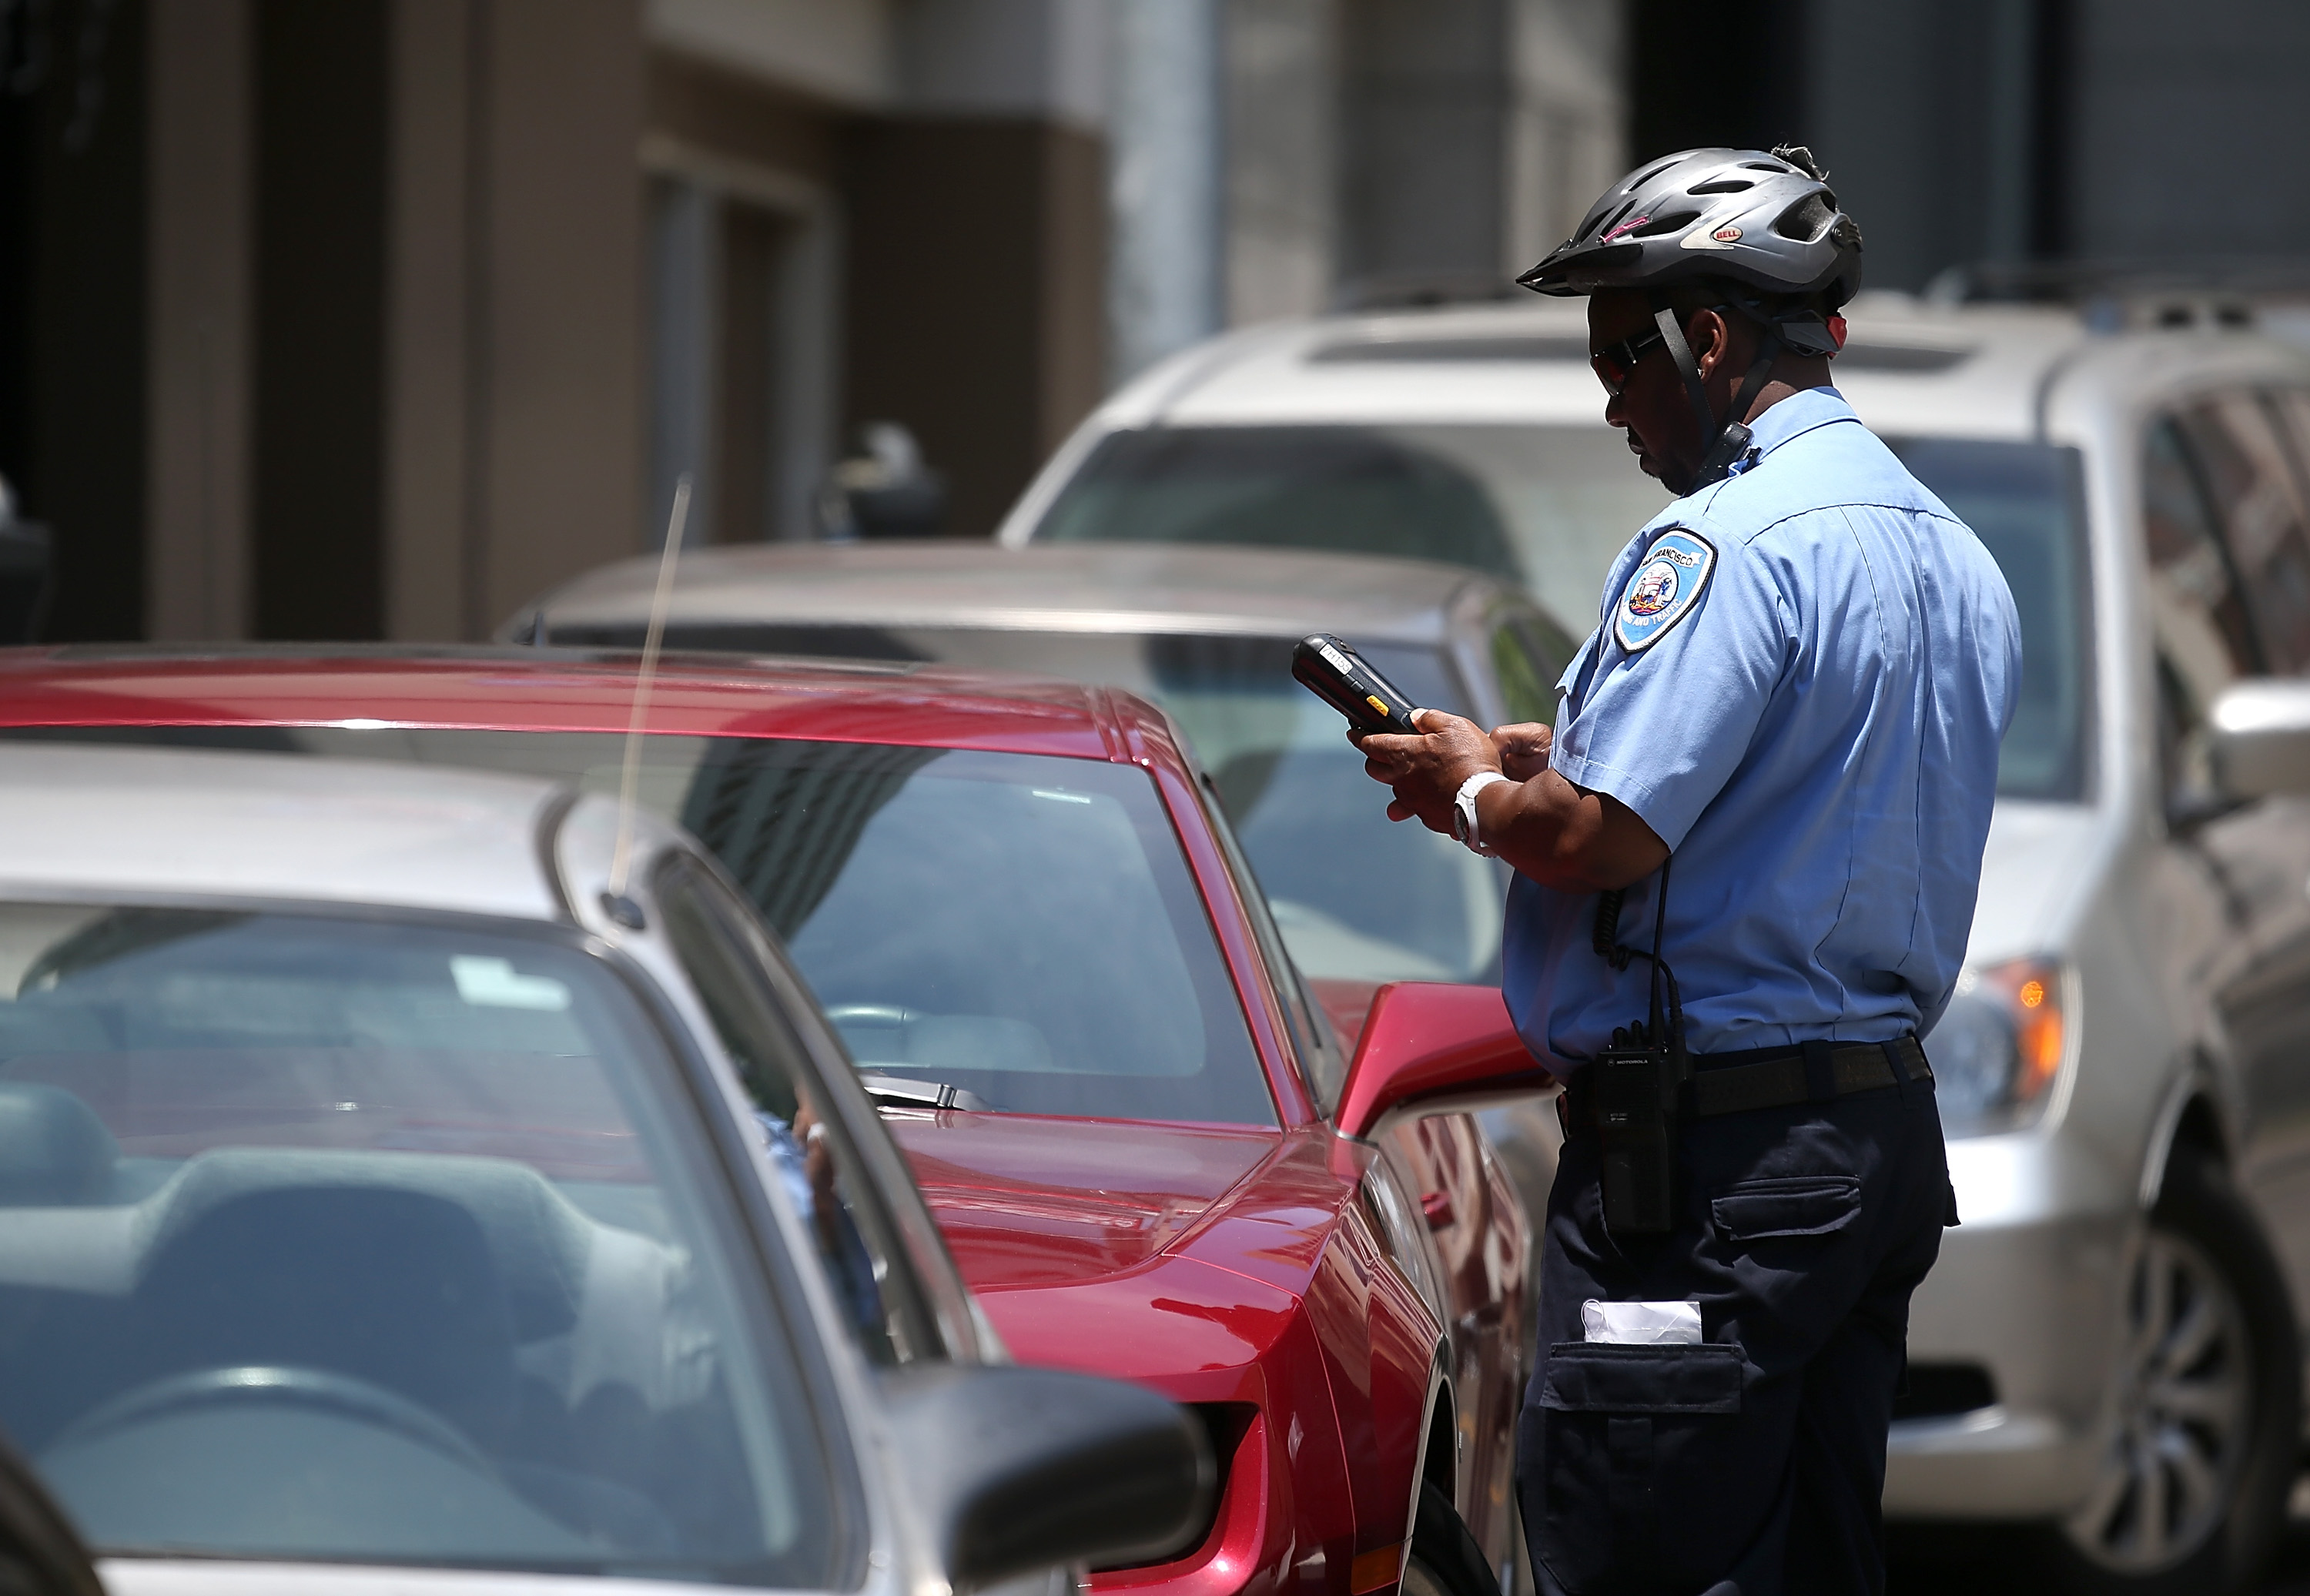 A San Francisco Municipal Transportation Agency parking control officer writes a parking ticket for an illegally parked car on July 3, 2013 in San Francisco.